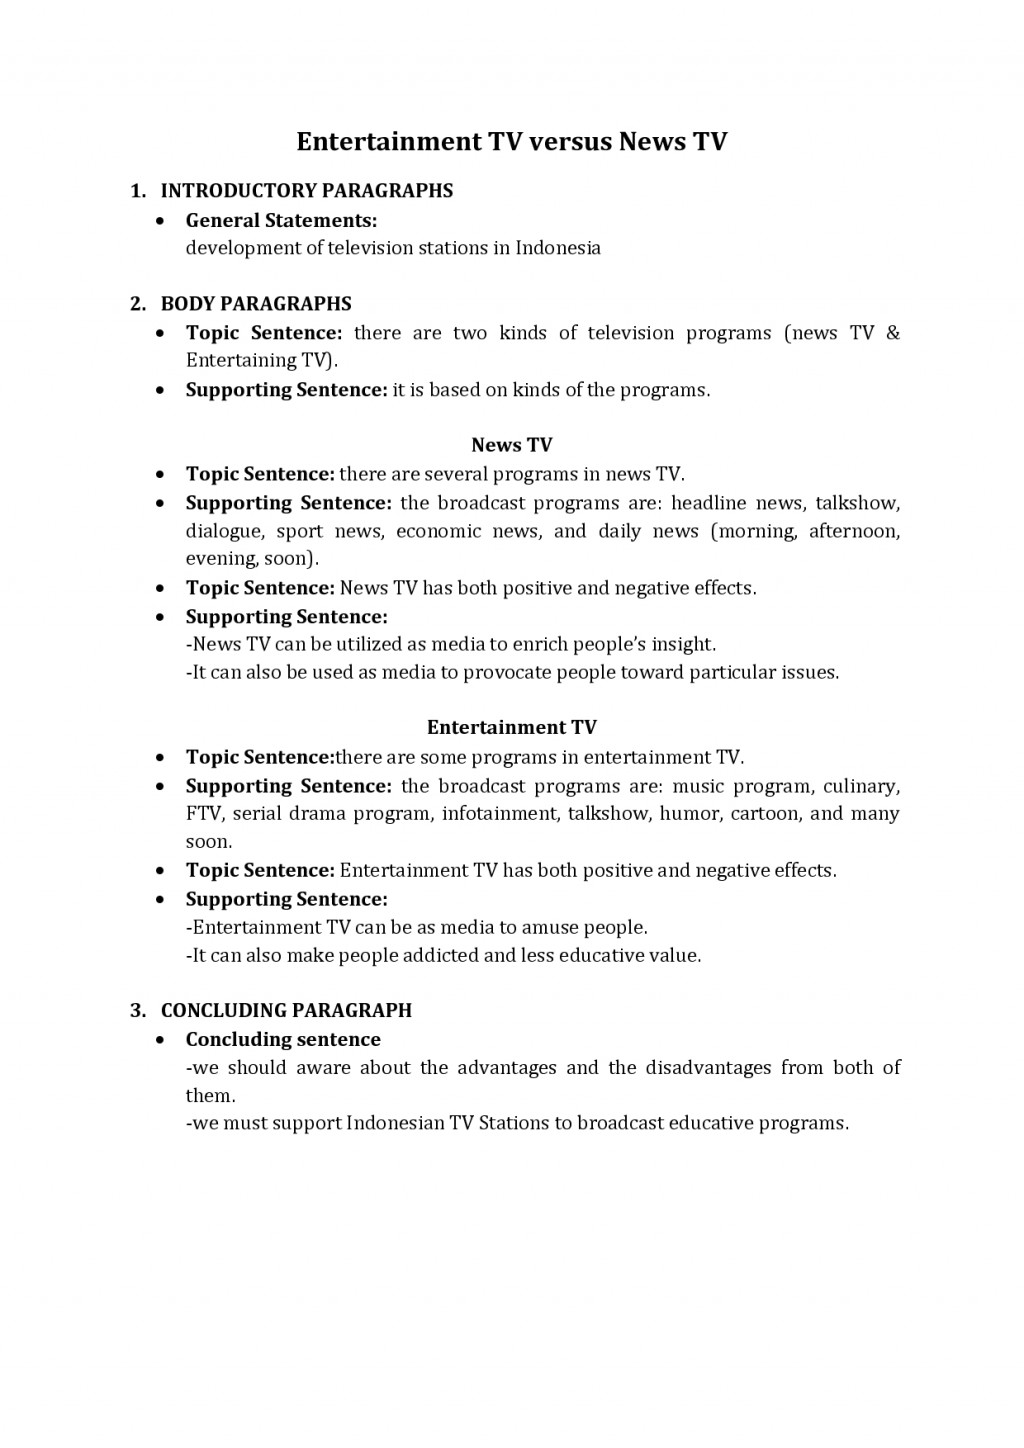 013 Essay Example College Outline Examples And Search On Pinterest Inmat What Is An Singular For Informal Large